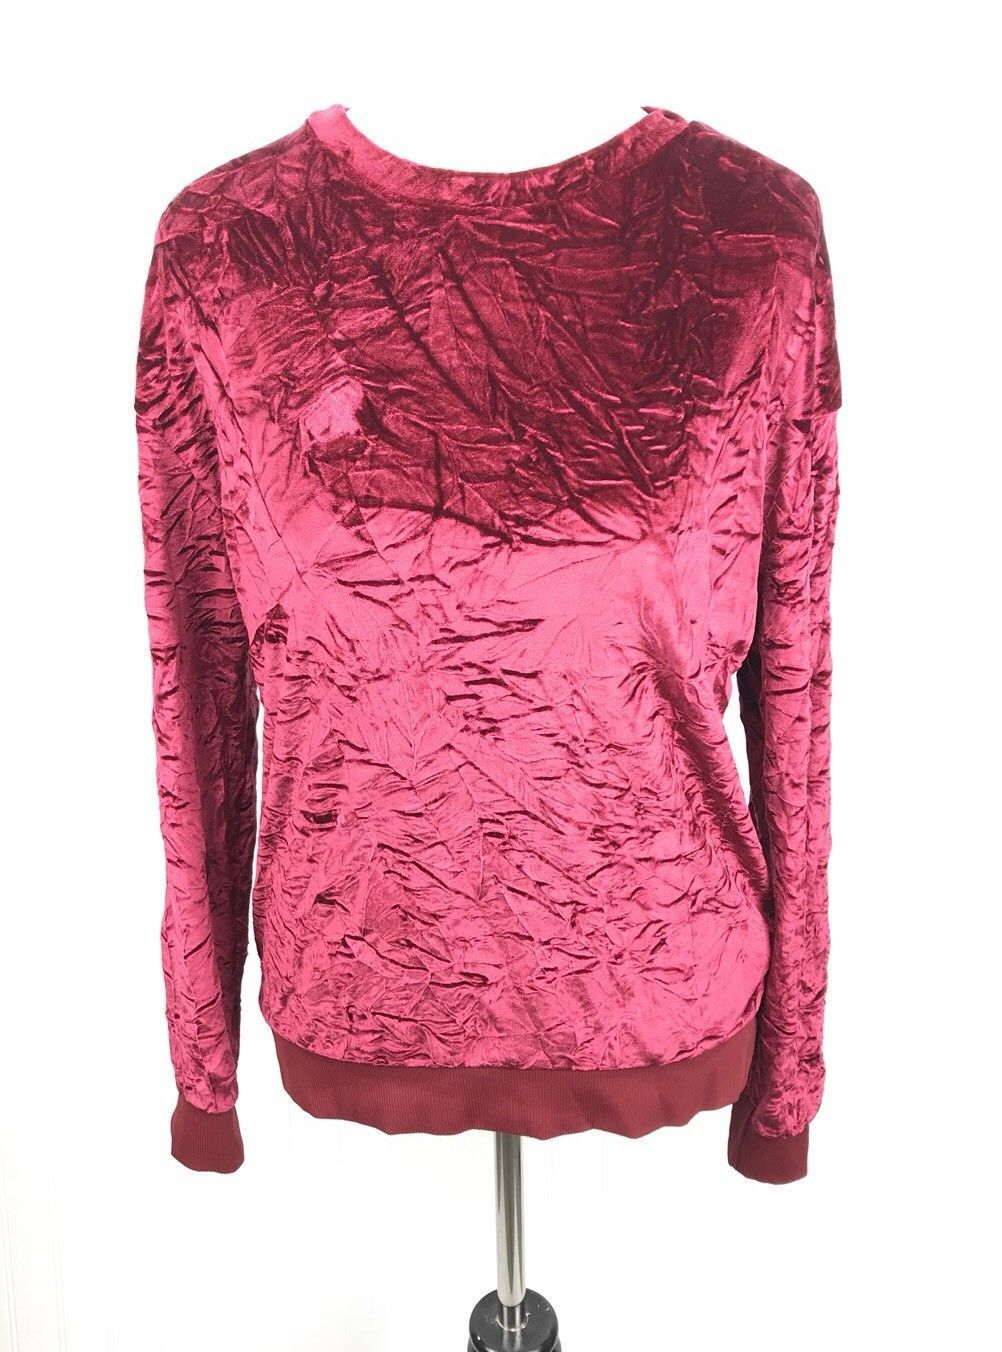 106e458d2f6 17.10 | Zara Collection Crushed Velvet Pullover Top US Size Small ...